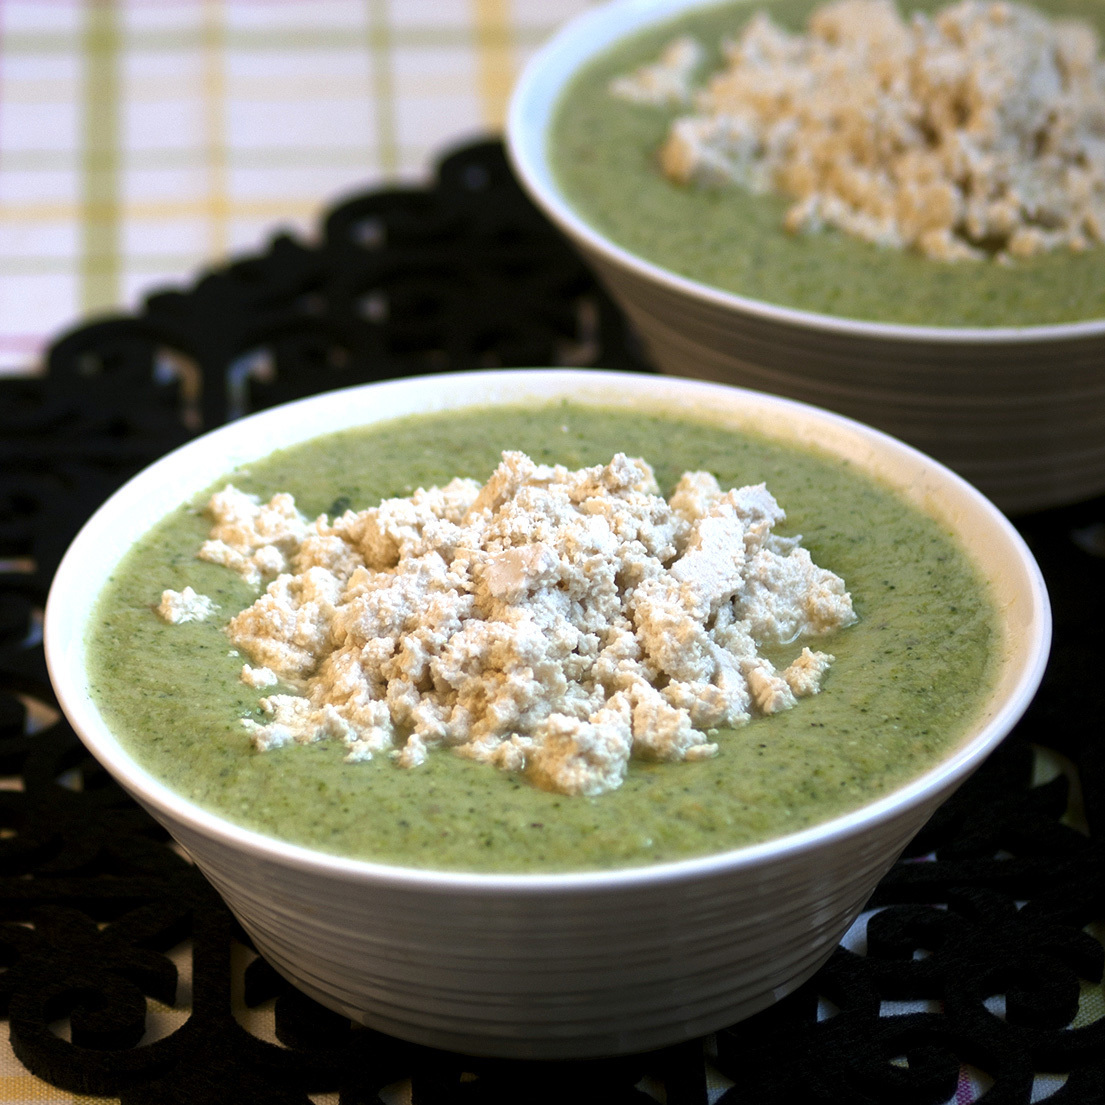 Almond & Broccoli Soup with Tofu Crumble